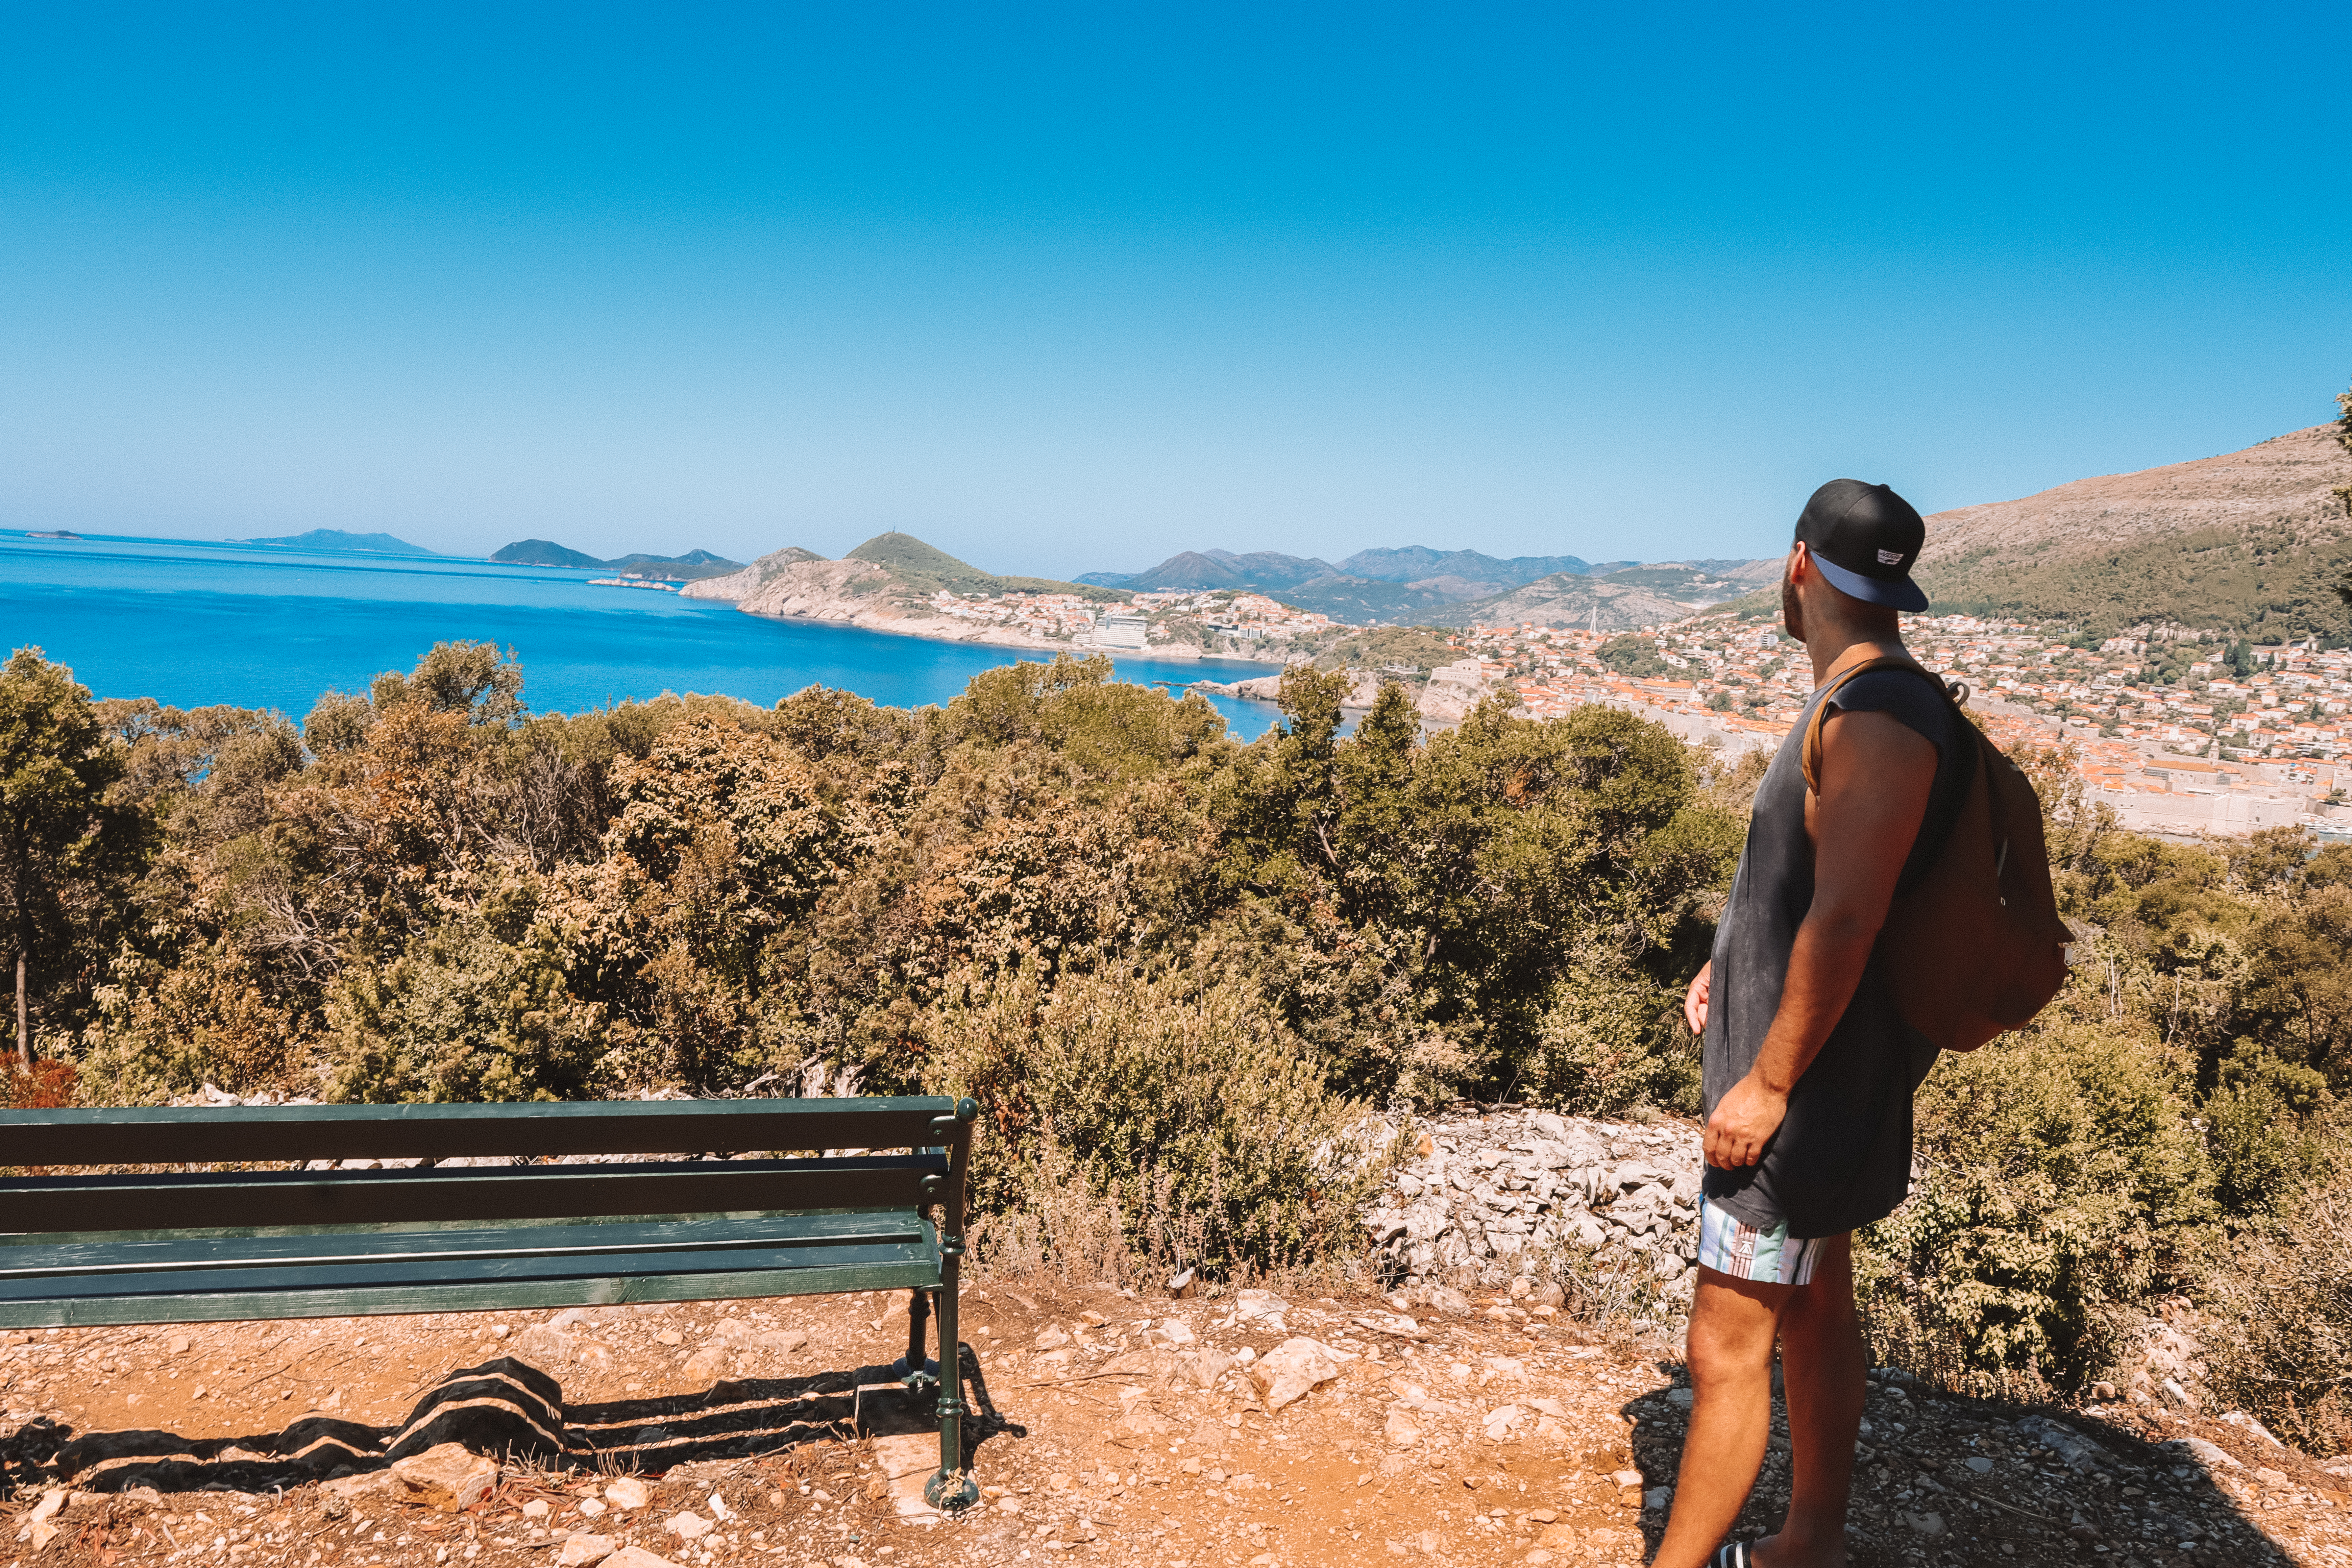 A man looking at the ocean and old town in the background in Dubrovnik. Things to do in Dubrovnik.